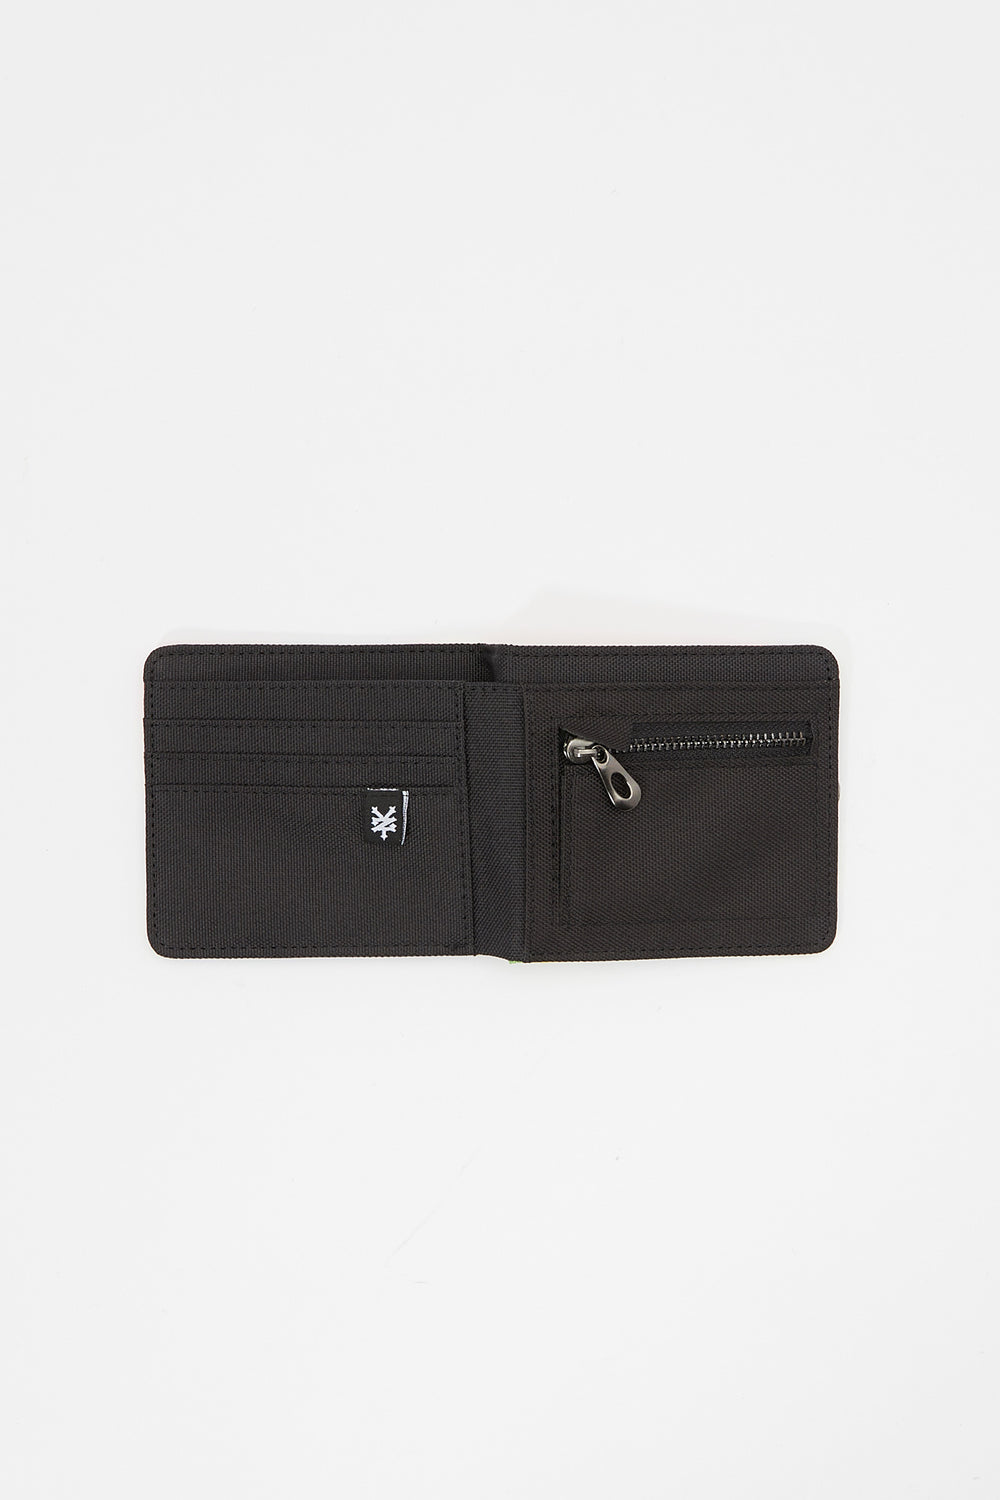 Zoo York Canvas Wallet Heather Grey